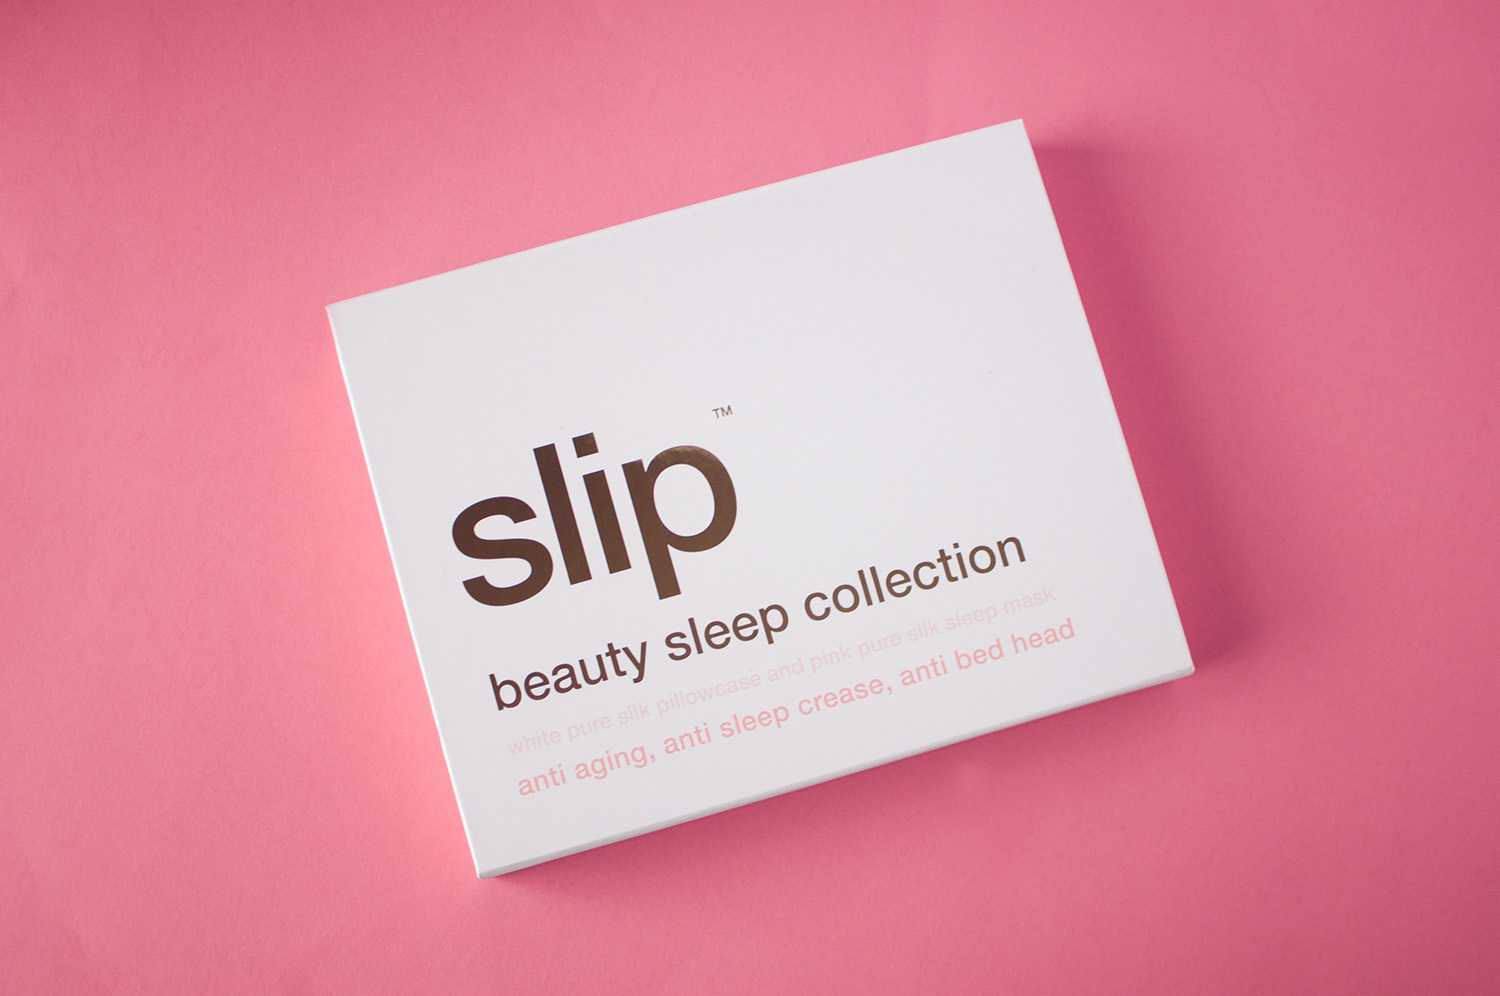 sleep beauty collection, slip silk review, slip silk gift set, slip gift set